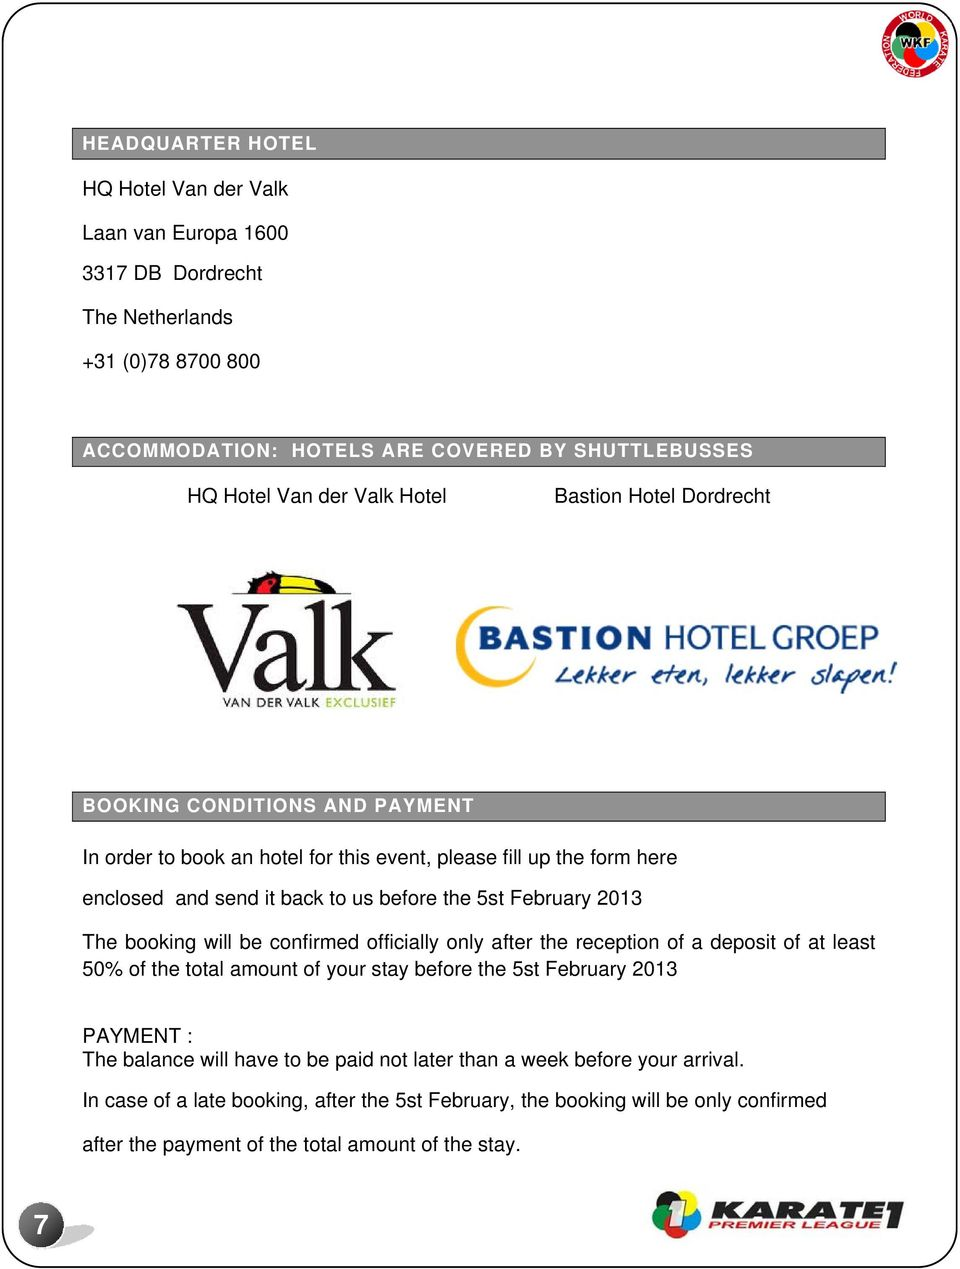 2013 The booking will be confirmed officially only after the reception of a deposit of at least 50% of the total amount of your stay before the 5st February 2013 PAYMENT : The balance will